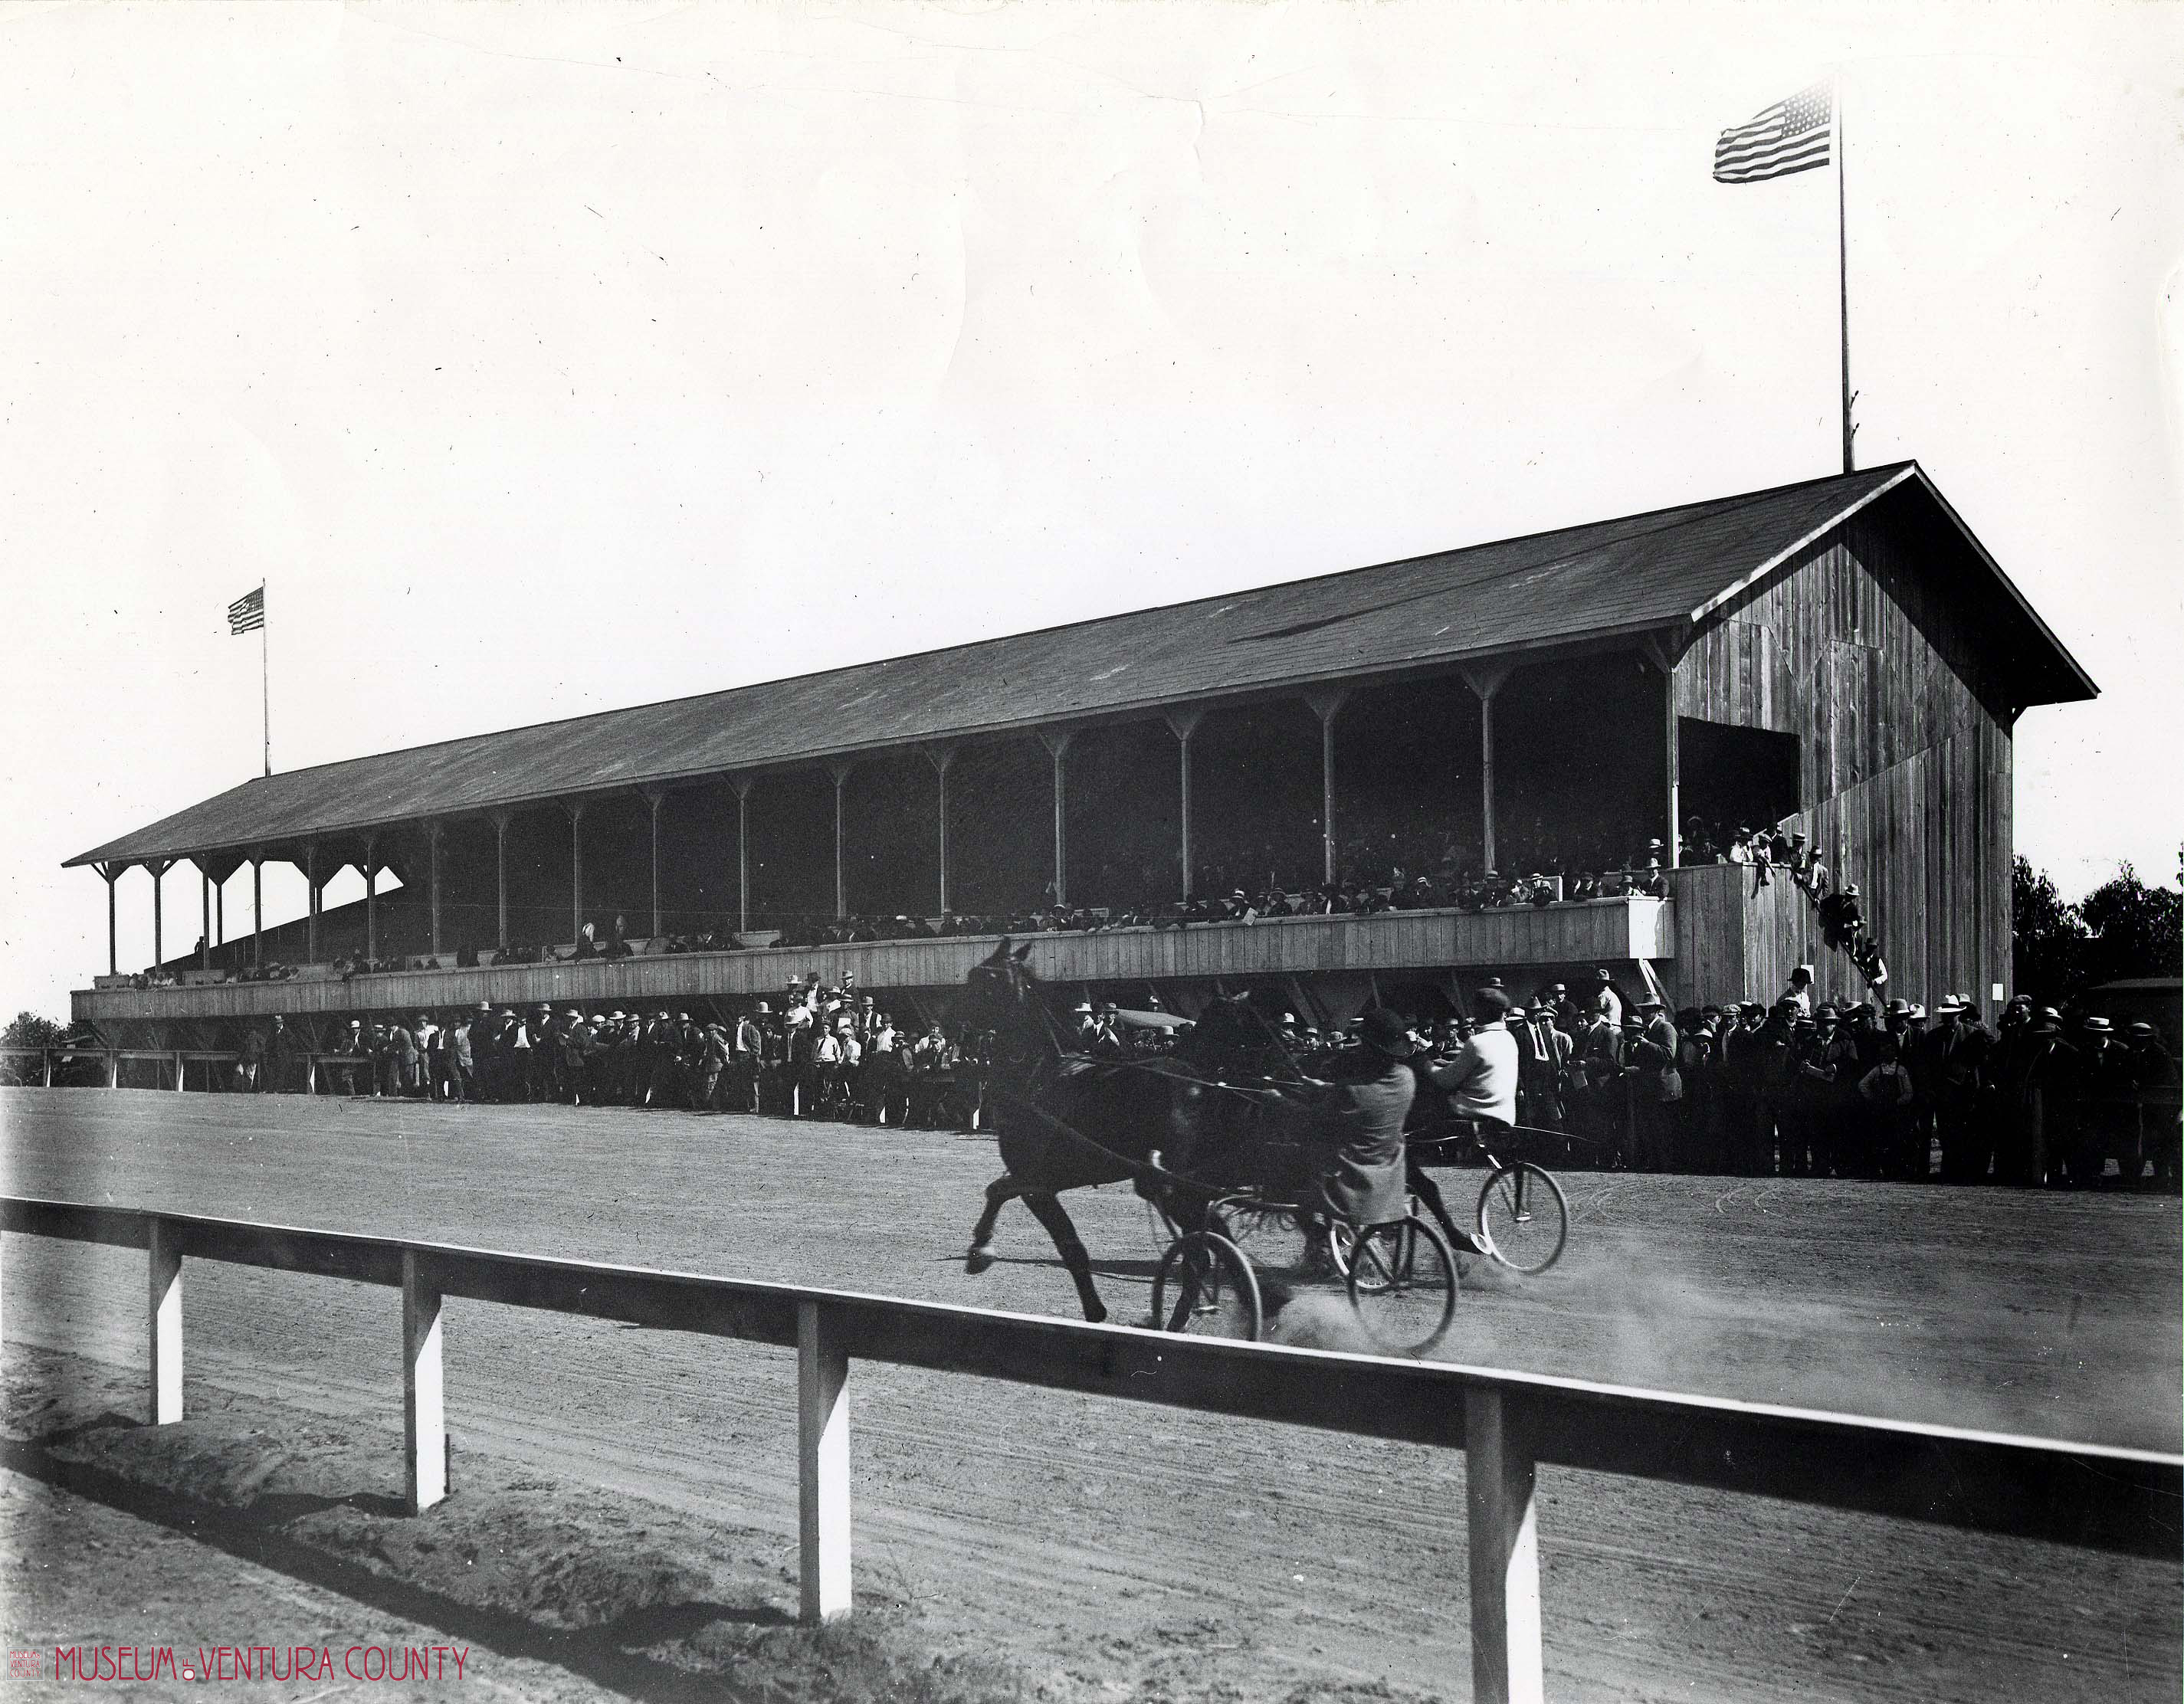 Historical photo of Horse Races at the Ventura County Fair